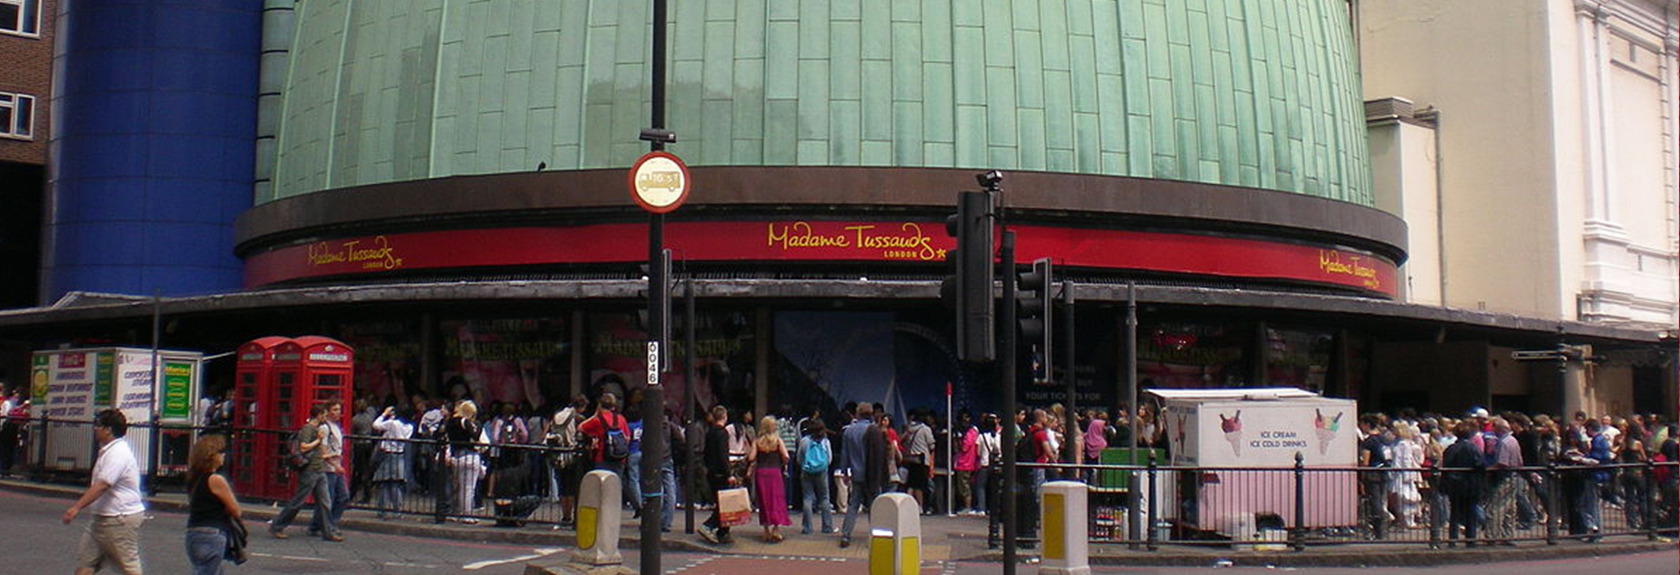 Madame Tussauds Tickets – snelle toegang